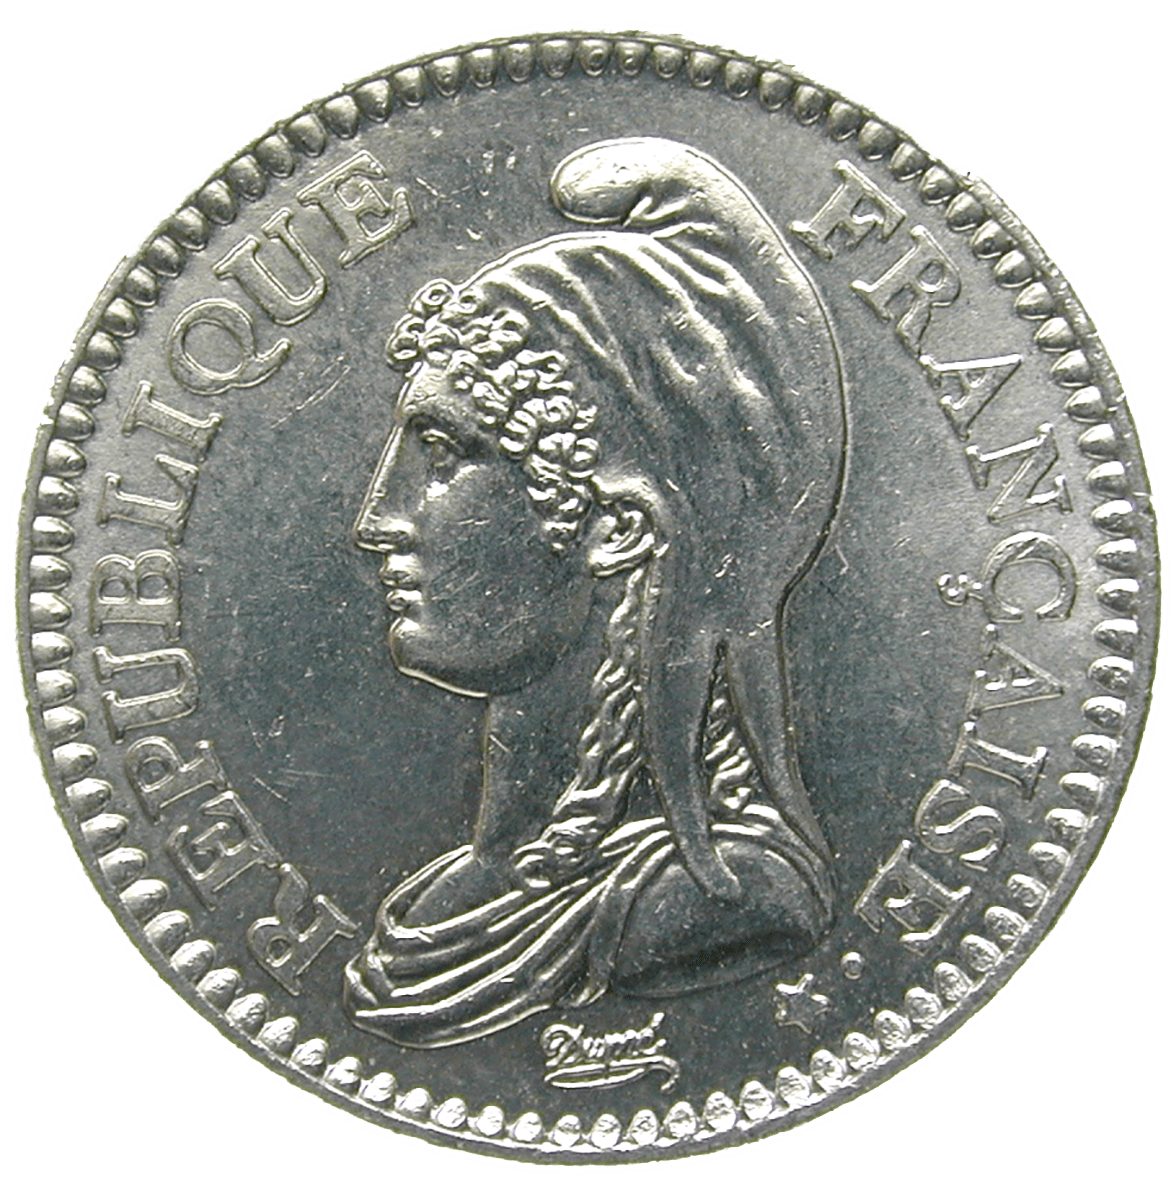 Republic of France, 1 Franc 1992 (obverse)